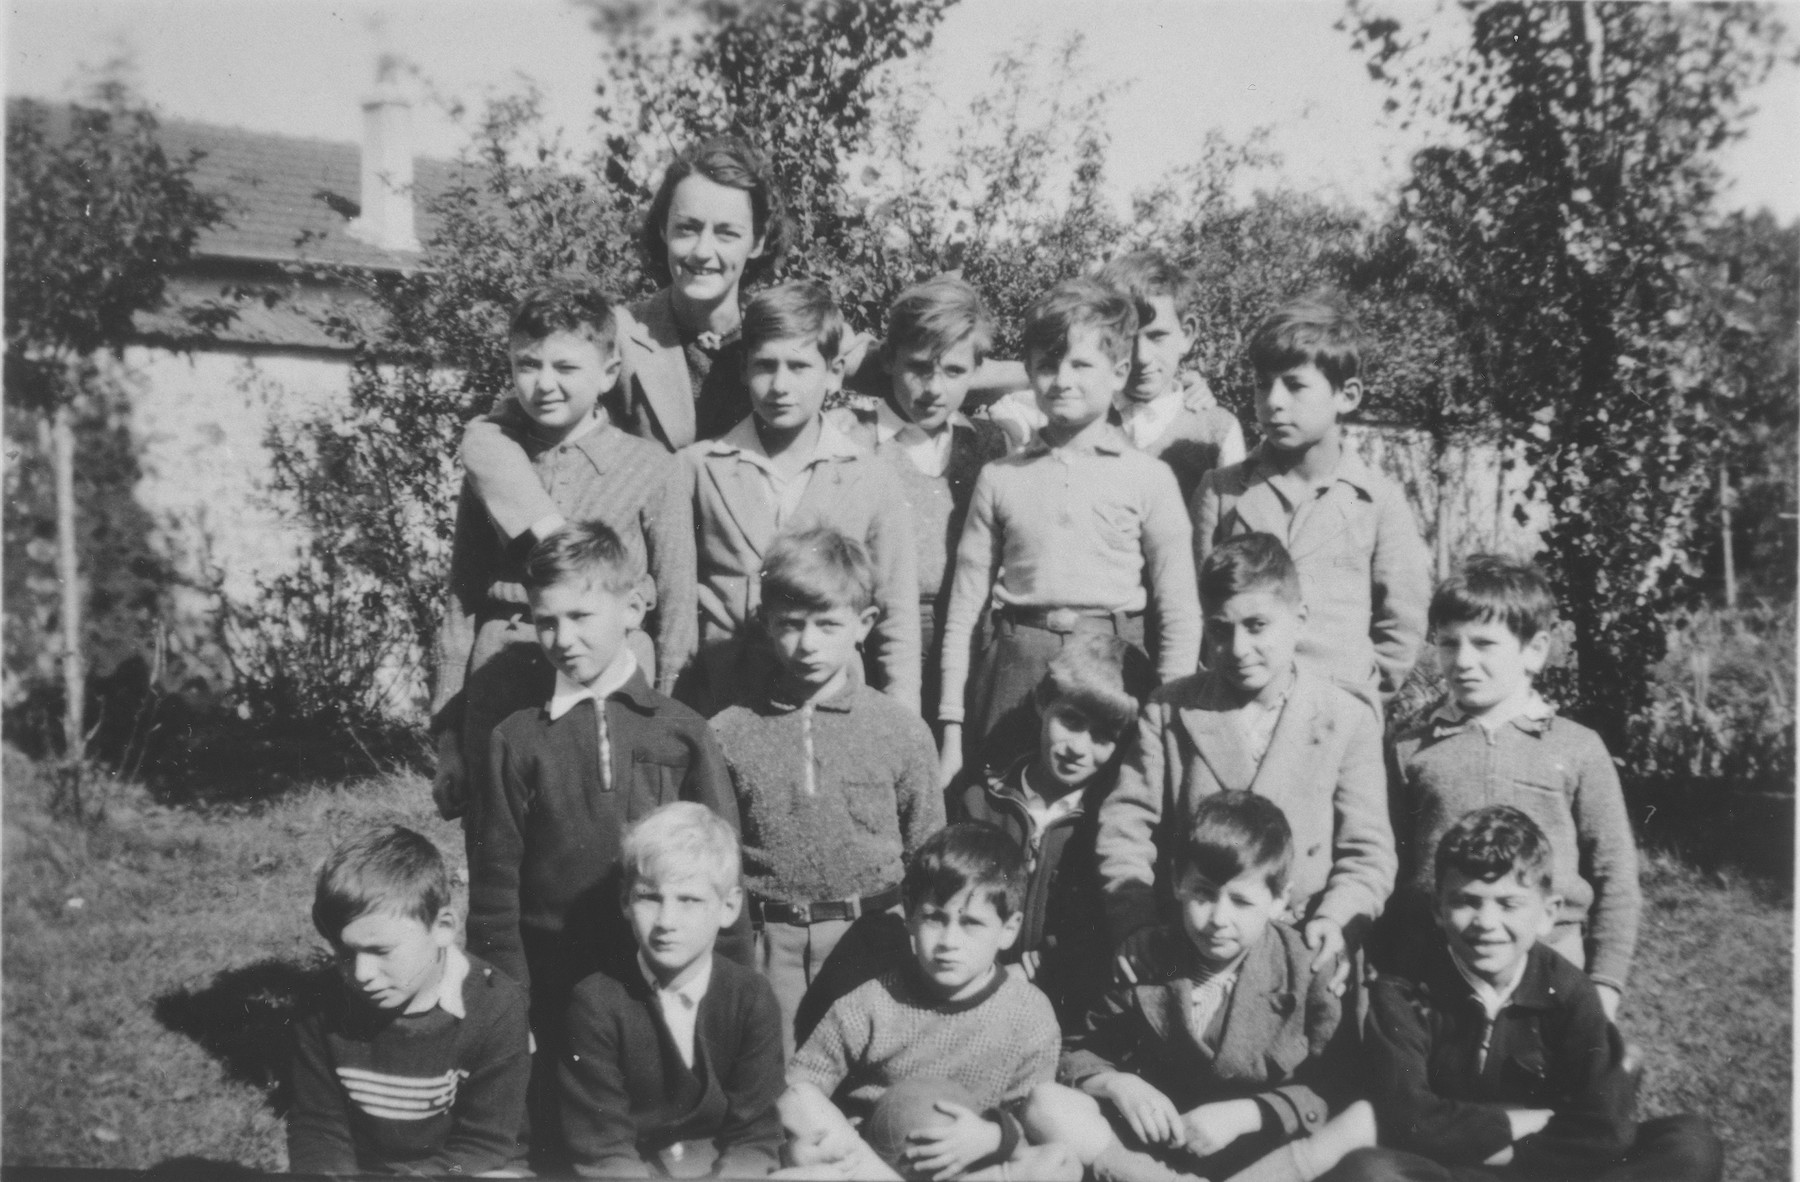 Raymonde Sauviac, a teacher at the Quincy children's home, poses with a group of Jewish refugee boys who arrived on a Kindertransport from Germany.  Sauviac was later recognized by Yad Vashem as one of the Righteous Among the Nations for her role in rescue efforts in France.  Pictured in the front row from left to right are:  Henry Hoppenstandt, Ralph Moratz, Werner Gossels, Peter Gossels and Wolodya Grajonza.  Second row: Karll Heinz  Wolfberg, Norbert Bikales, Sammy Stuck, Erwin Cosman and Herbert Oberniker.  Third row: Werner Goldschmidt, Gerhard Glass, Henri Kreft, Arno Marcuse, Egon Zwirn and Berthold Friedlander. Top: Mlle. Raymonde Sauviac (later Fanouillere).